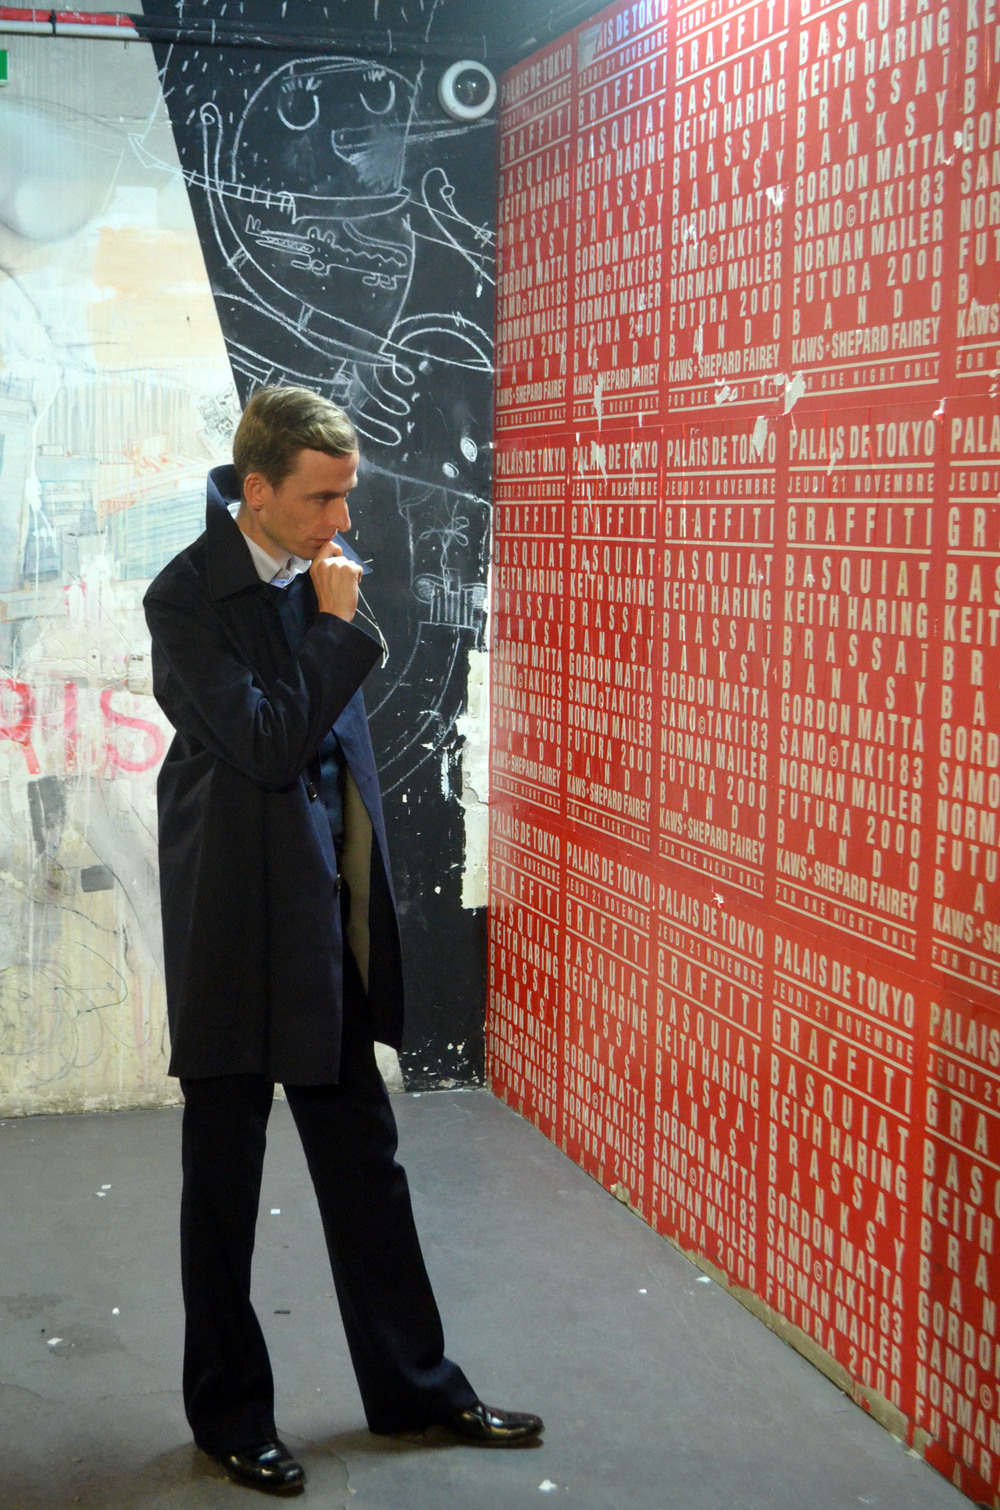 Richard Clay at graffiti exhibition, Palais De Tokyo, Paris.